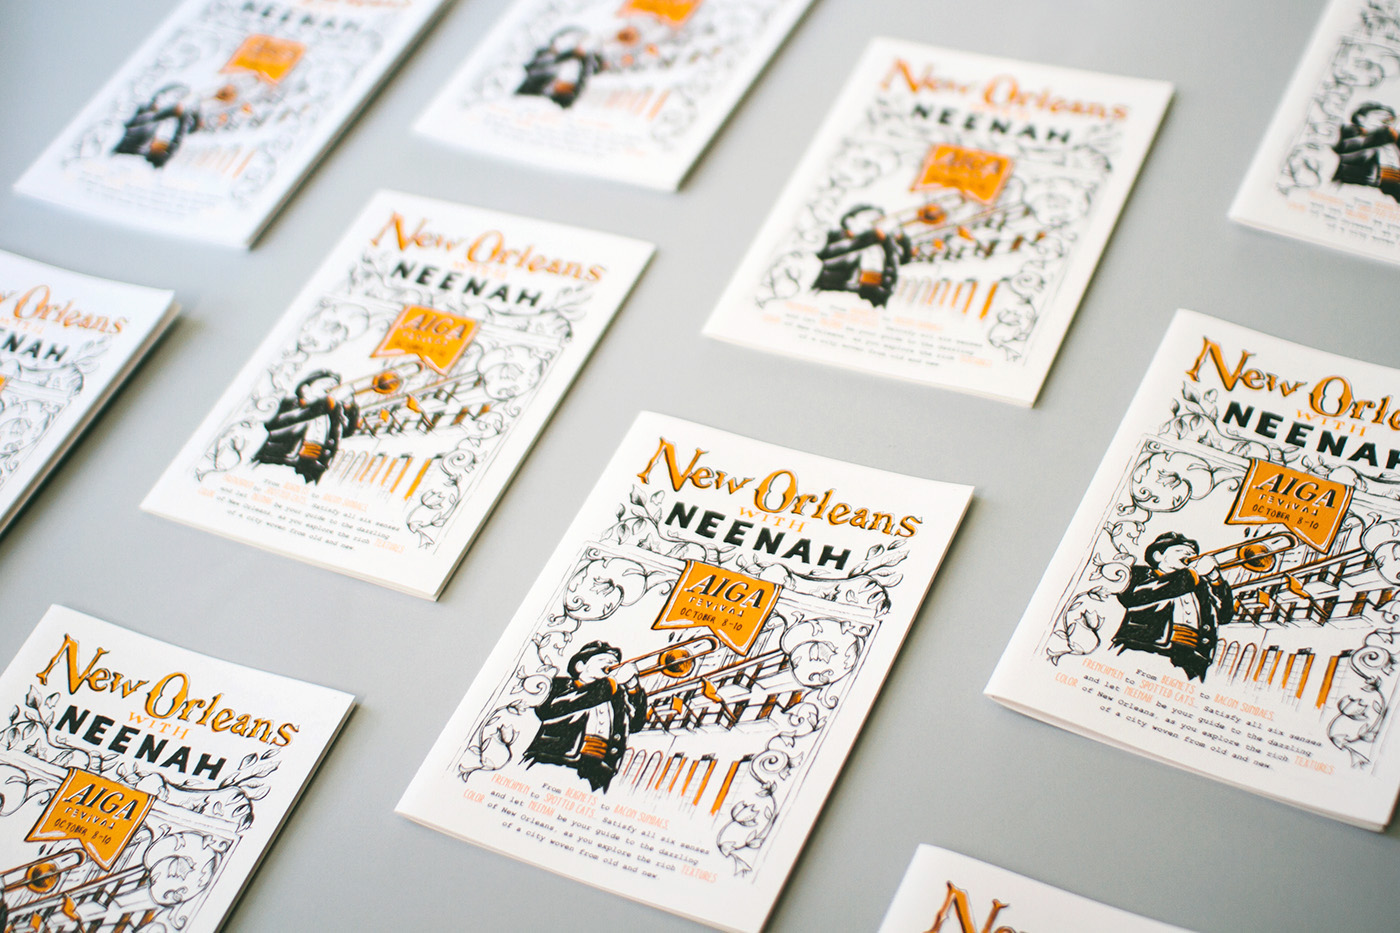 Cover illustration and design of New Orleans with Neenah, for Neenah Paper at the AIGA Conference 2015. A man in a suit plays the trombone with hand-drawn floral borders around him and a New Orleans balcony in the background.